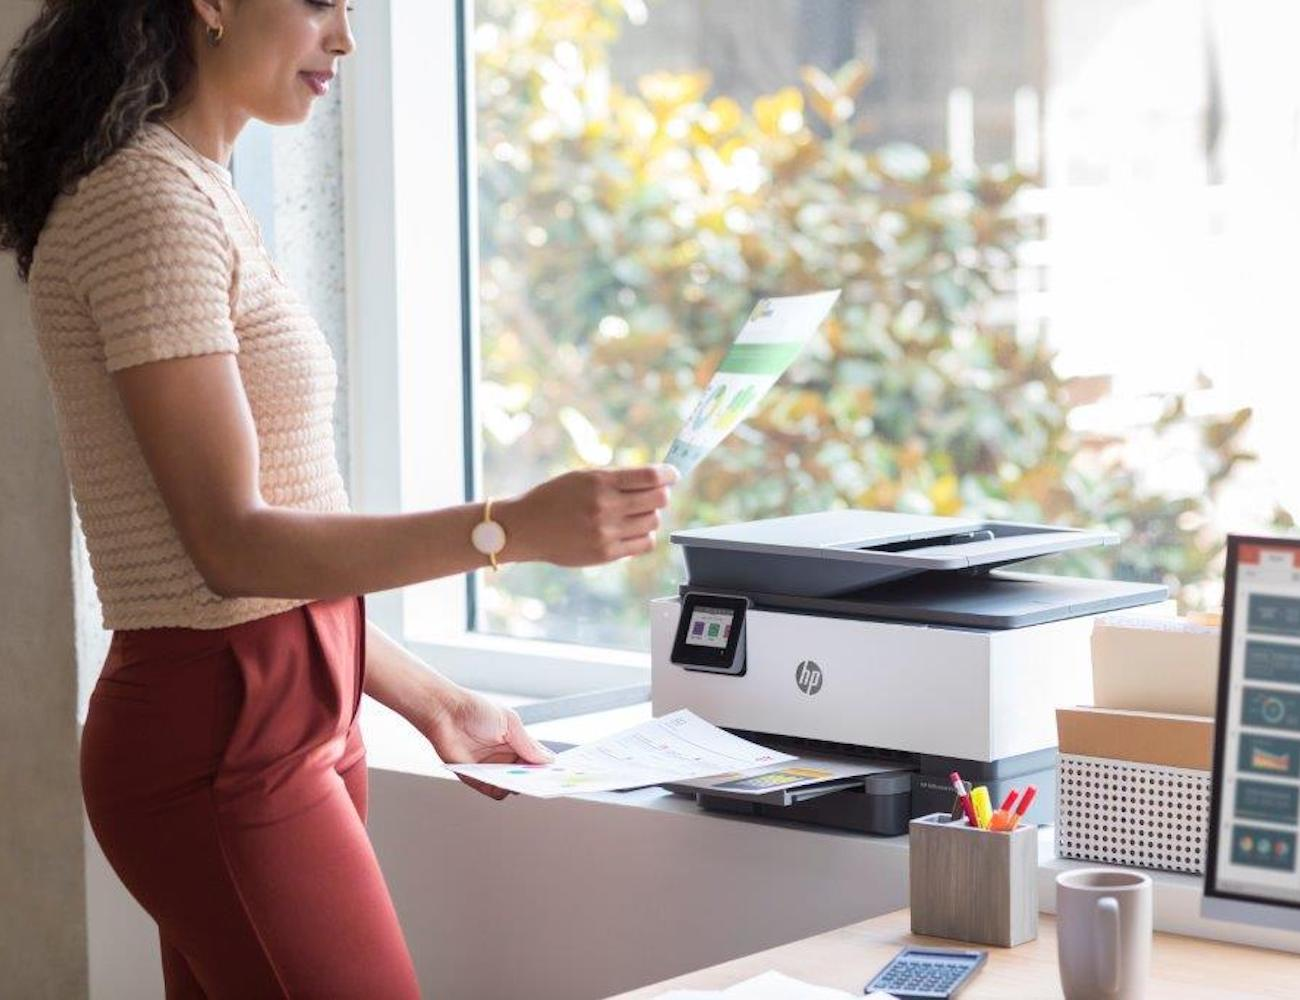 HP OfficeJet Smart Pro Printers make your workflow more effective